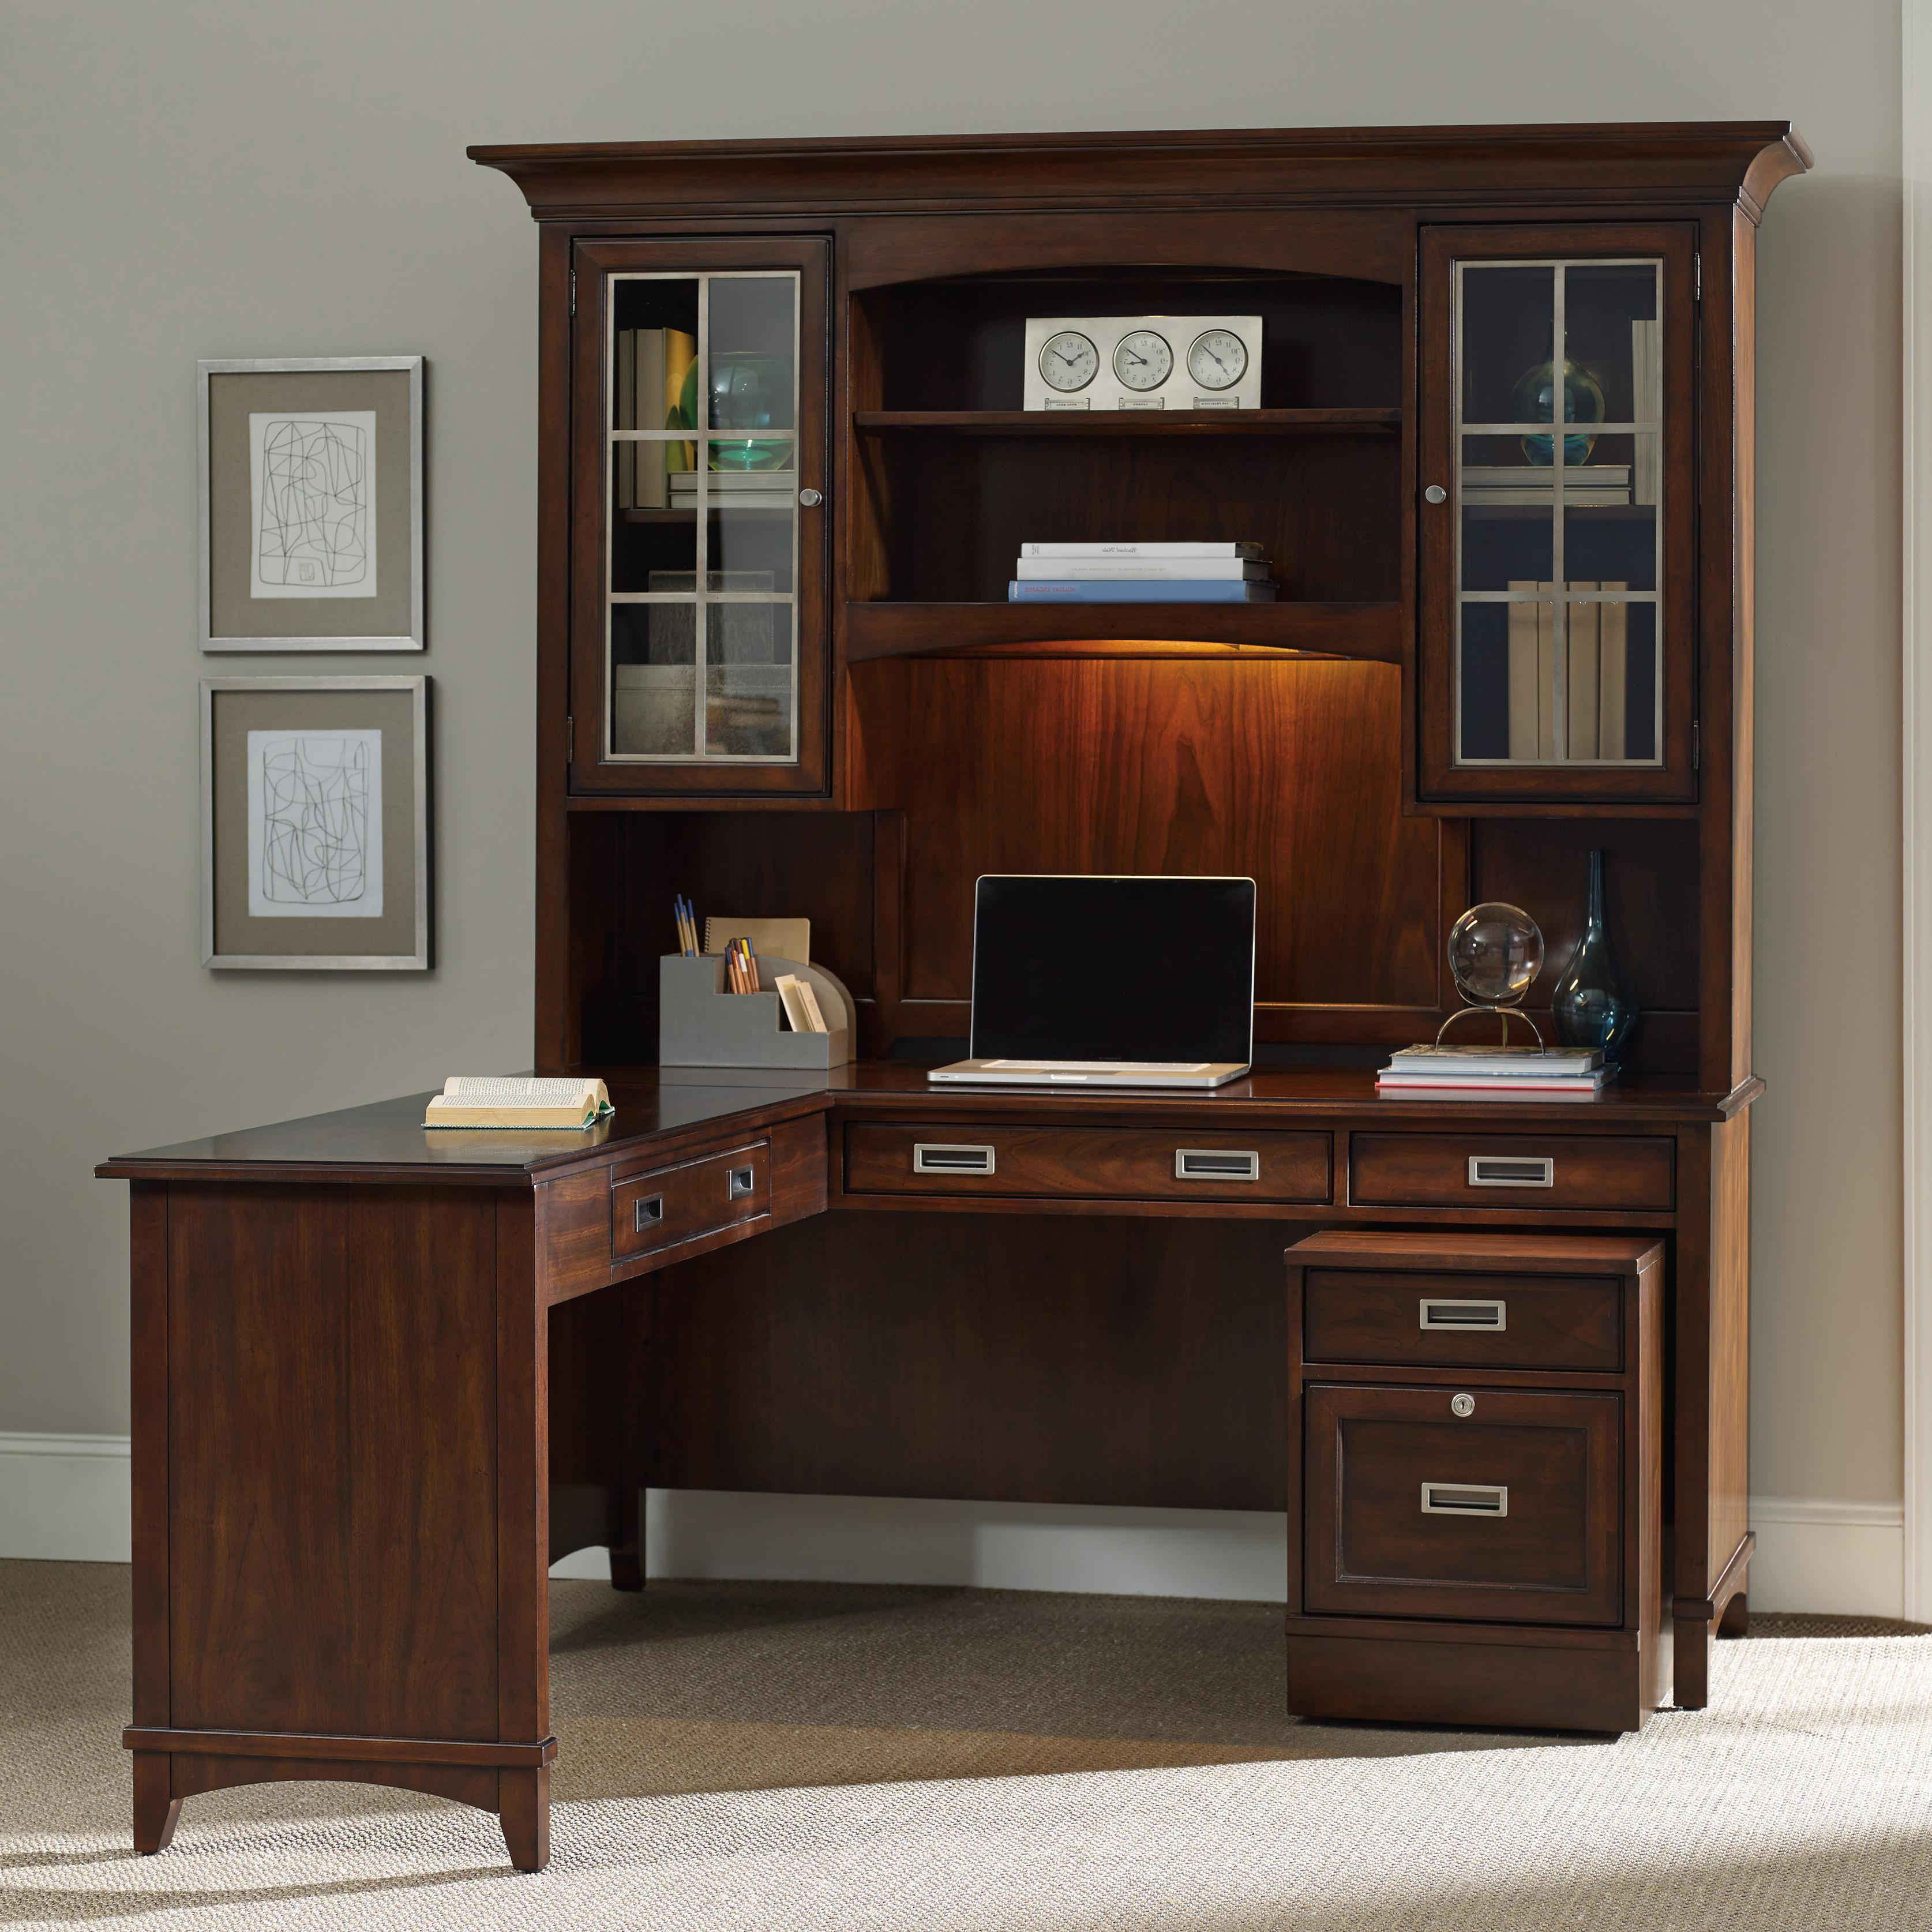 hooker furniture latitude lshaped desk item number - Hooker Furniture Outlet